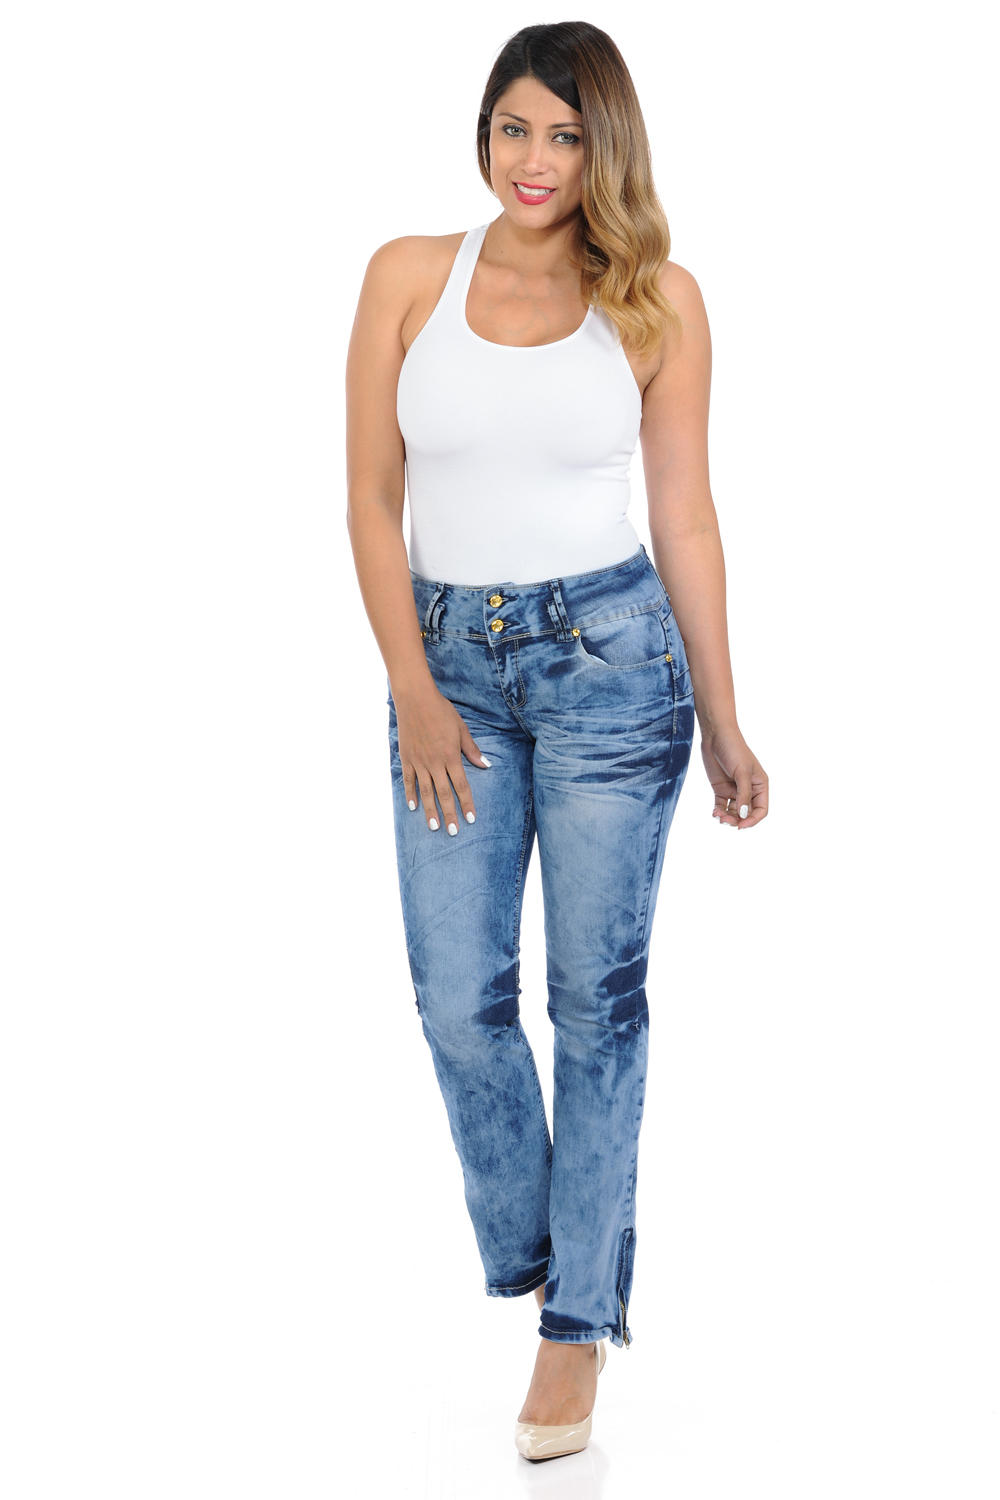 Crocker Women's Jeans - Push Up - Bootcut - Winter Haven Co